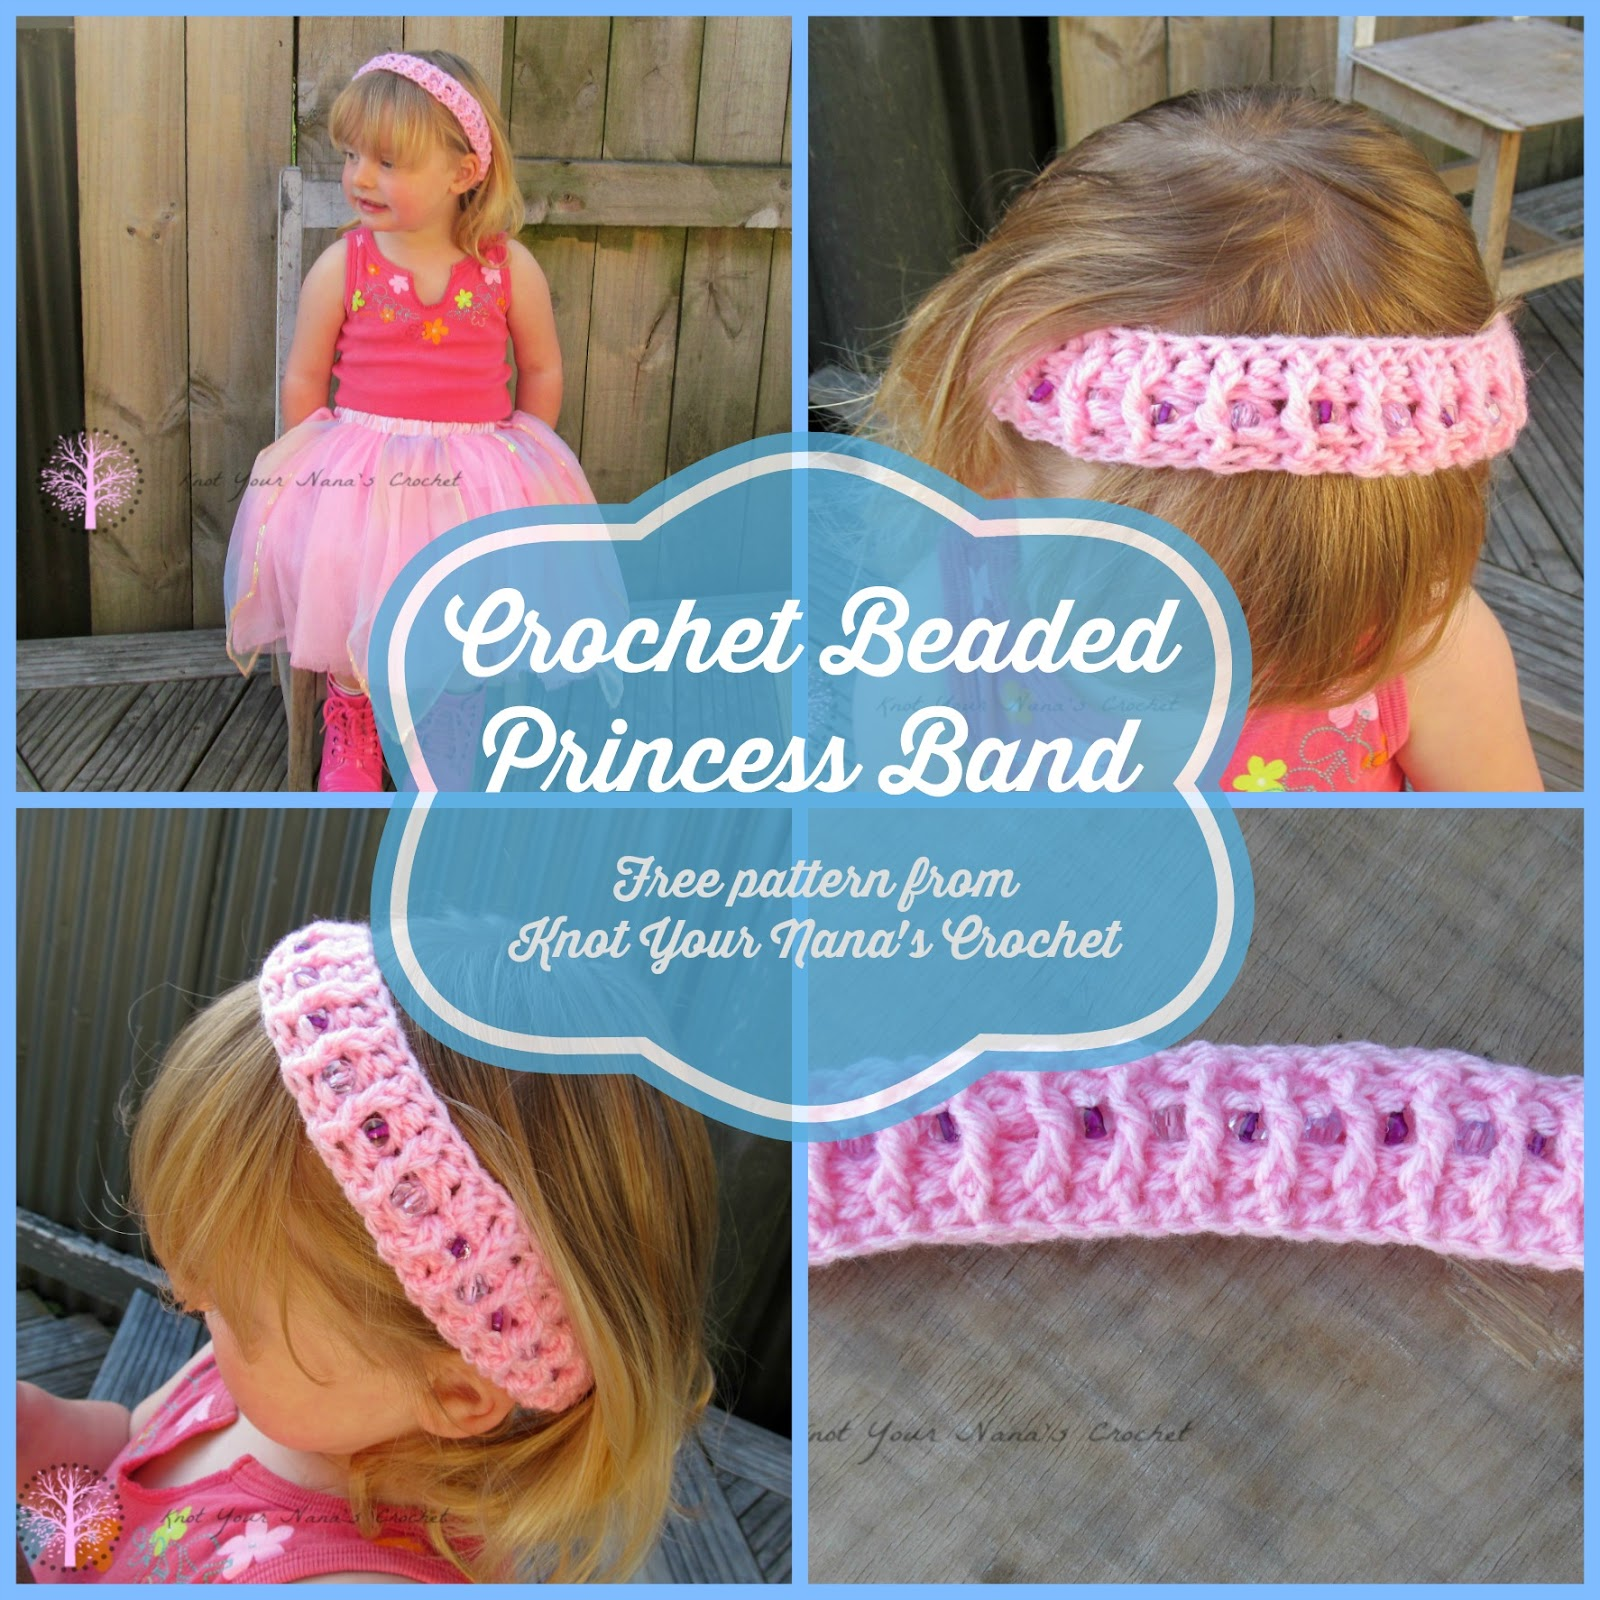 Crochet Beaded Princess Band